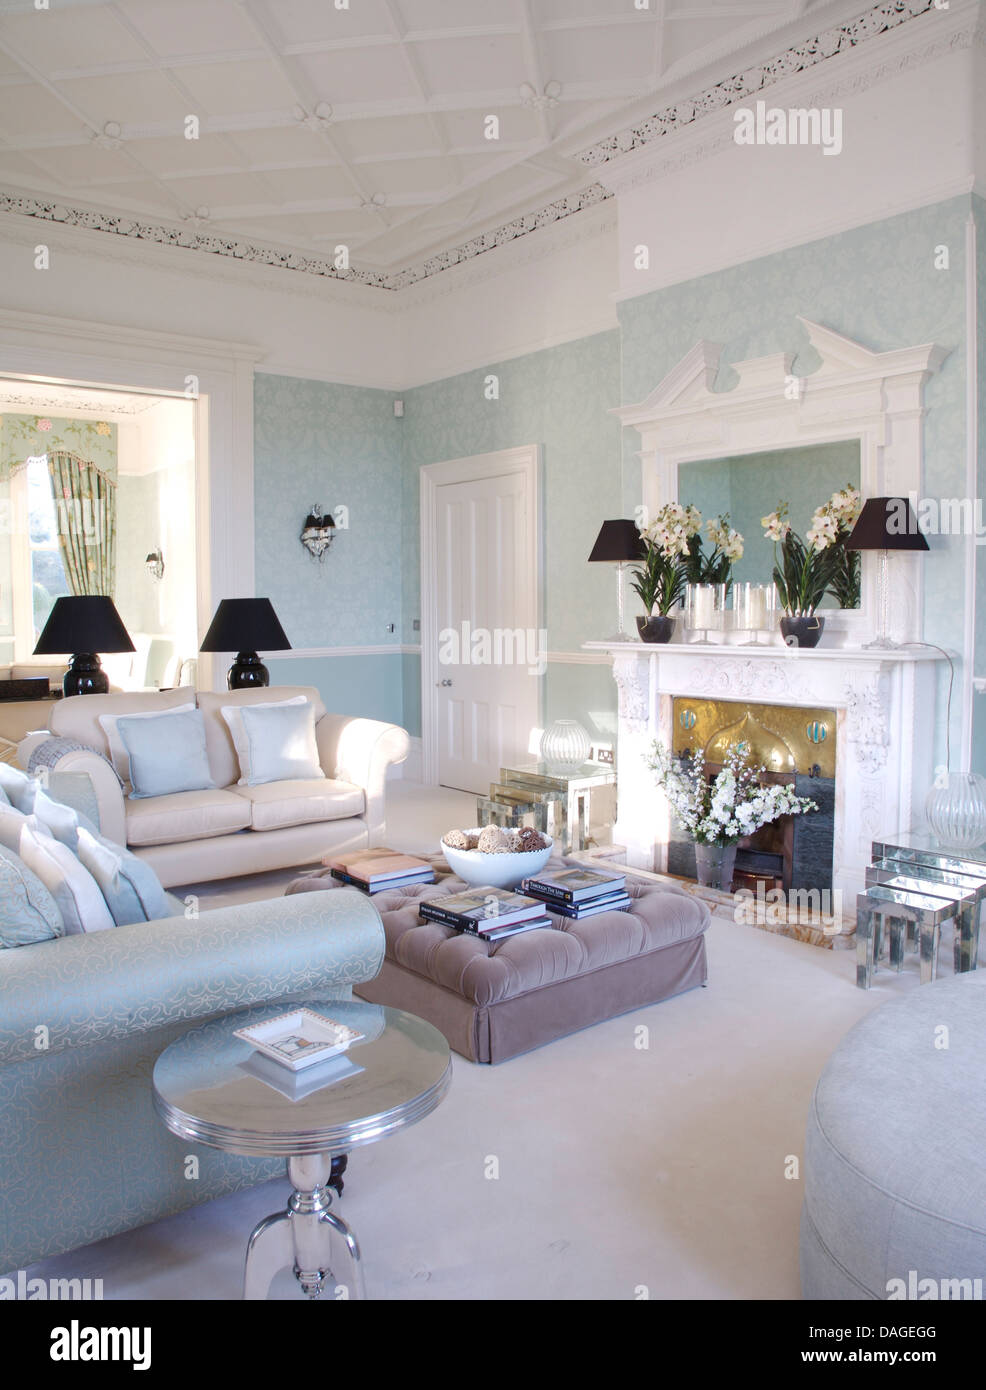 Edwardian Living Room White And Pale Blue Sofas Around Gray Velvet Ottoman In Front Of Fireplace